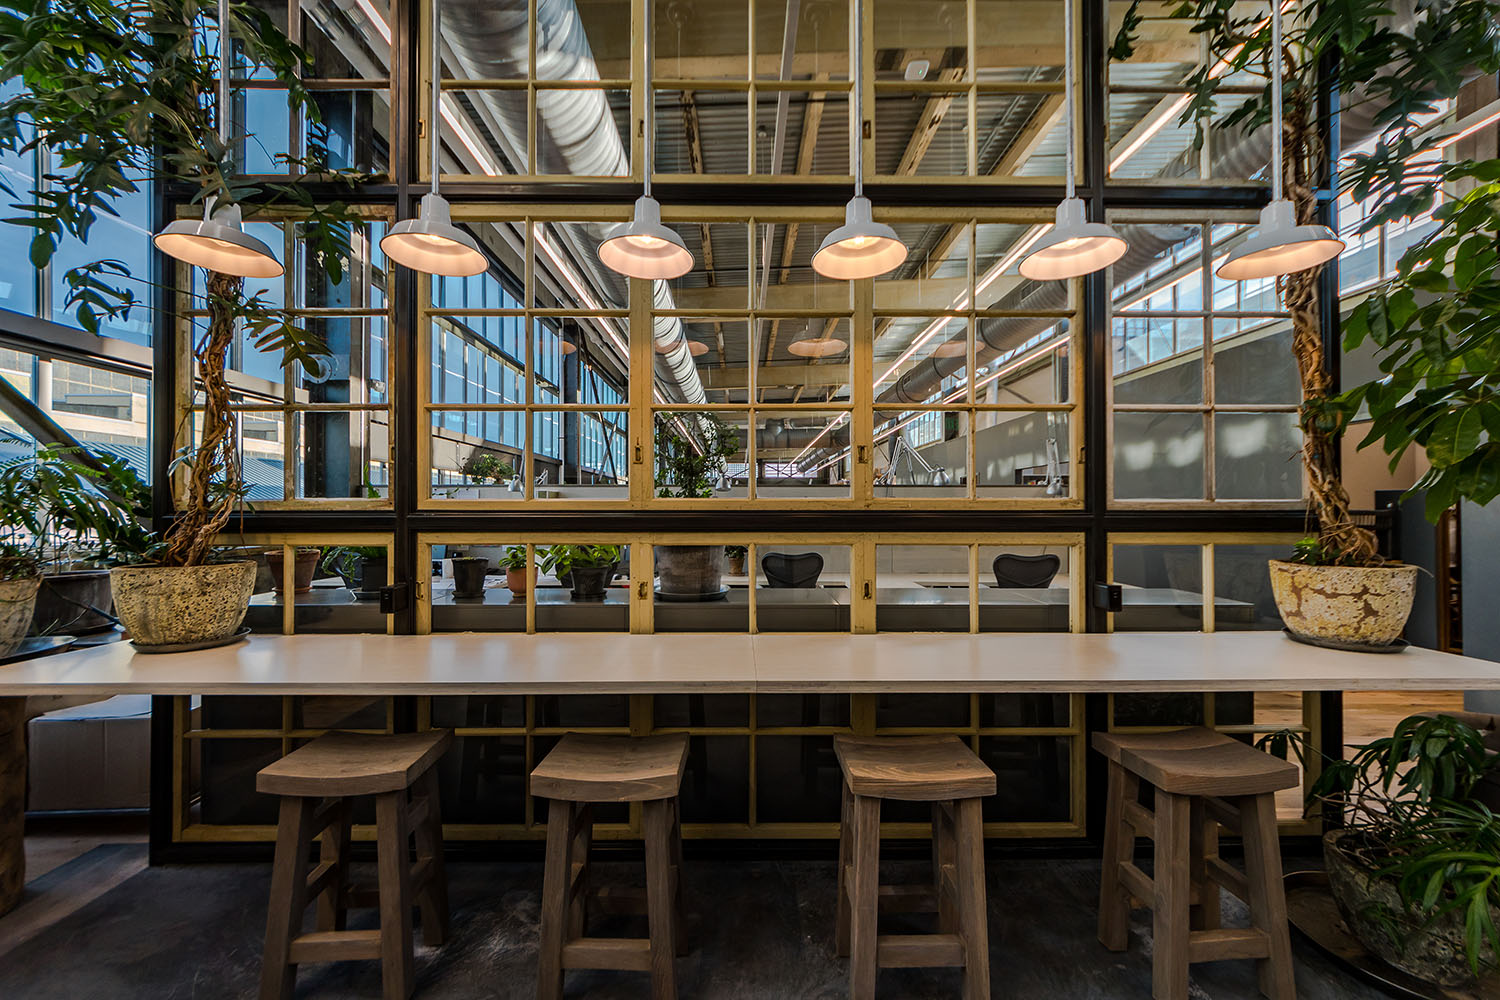 NewStudio Architecture collaborated with URBN to design Navy Yard Building 18 Annex with light-filled workspaces for Terrain staff